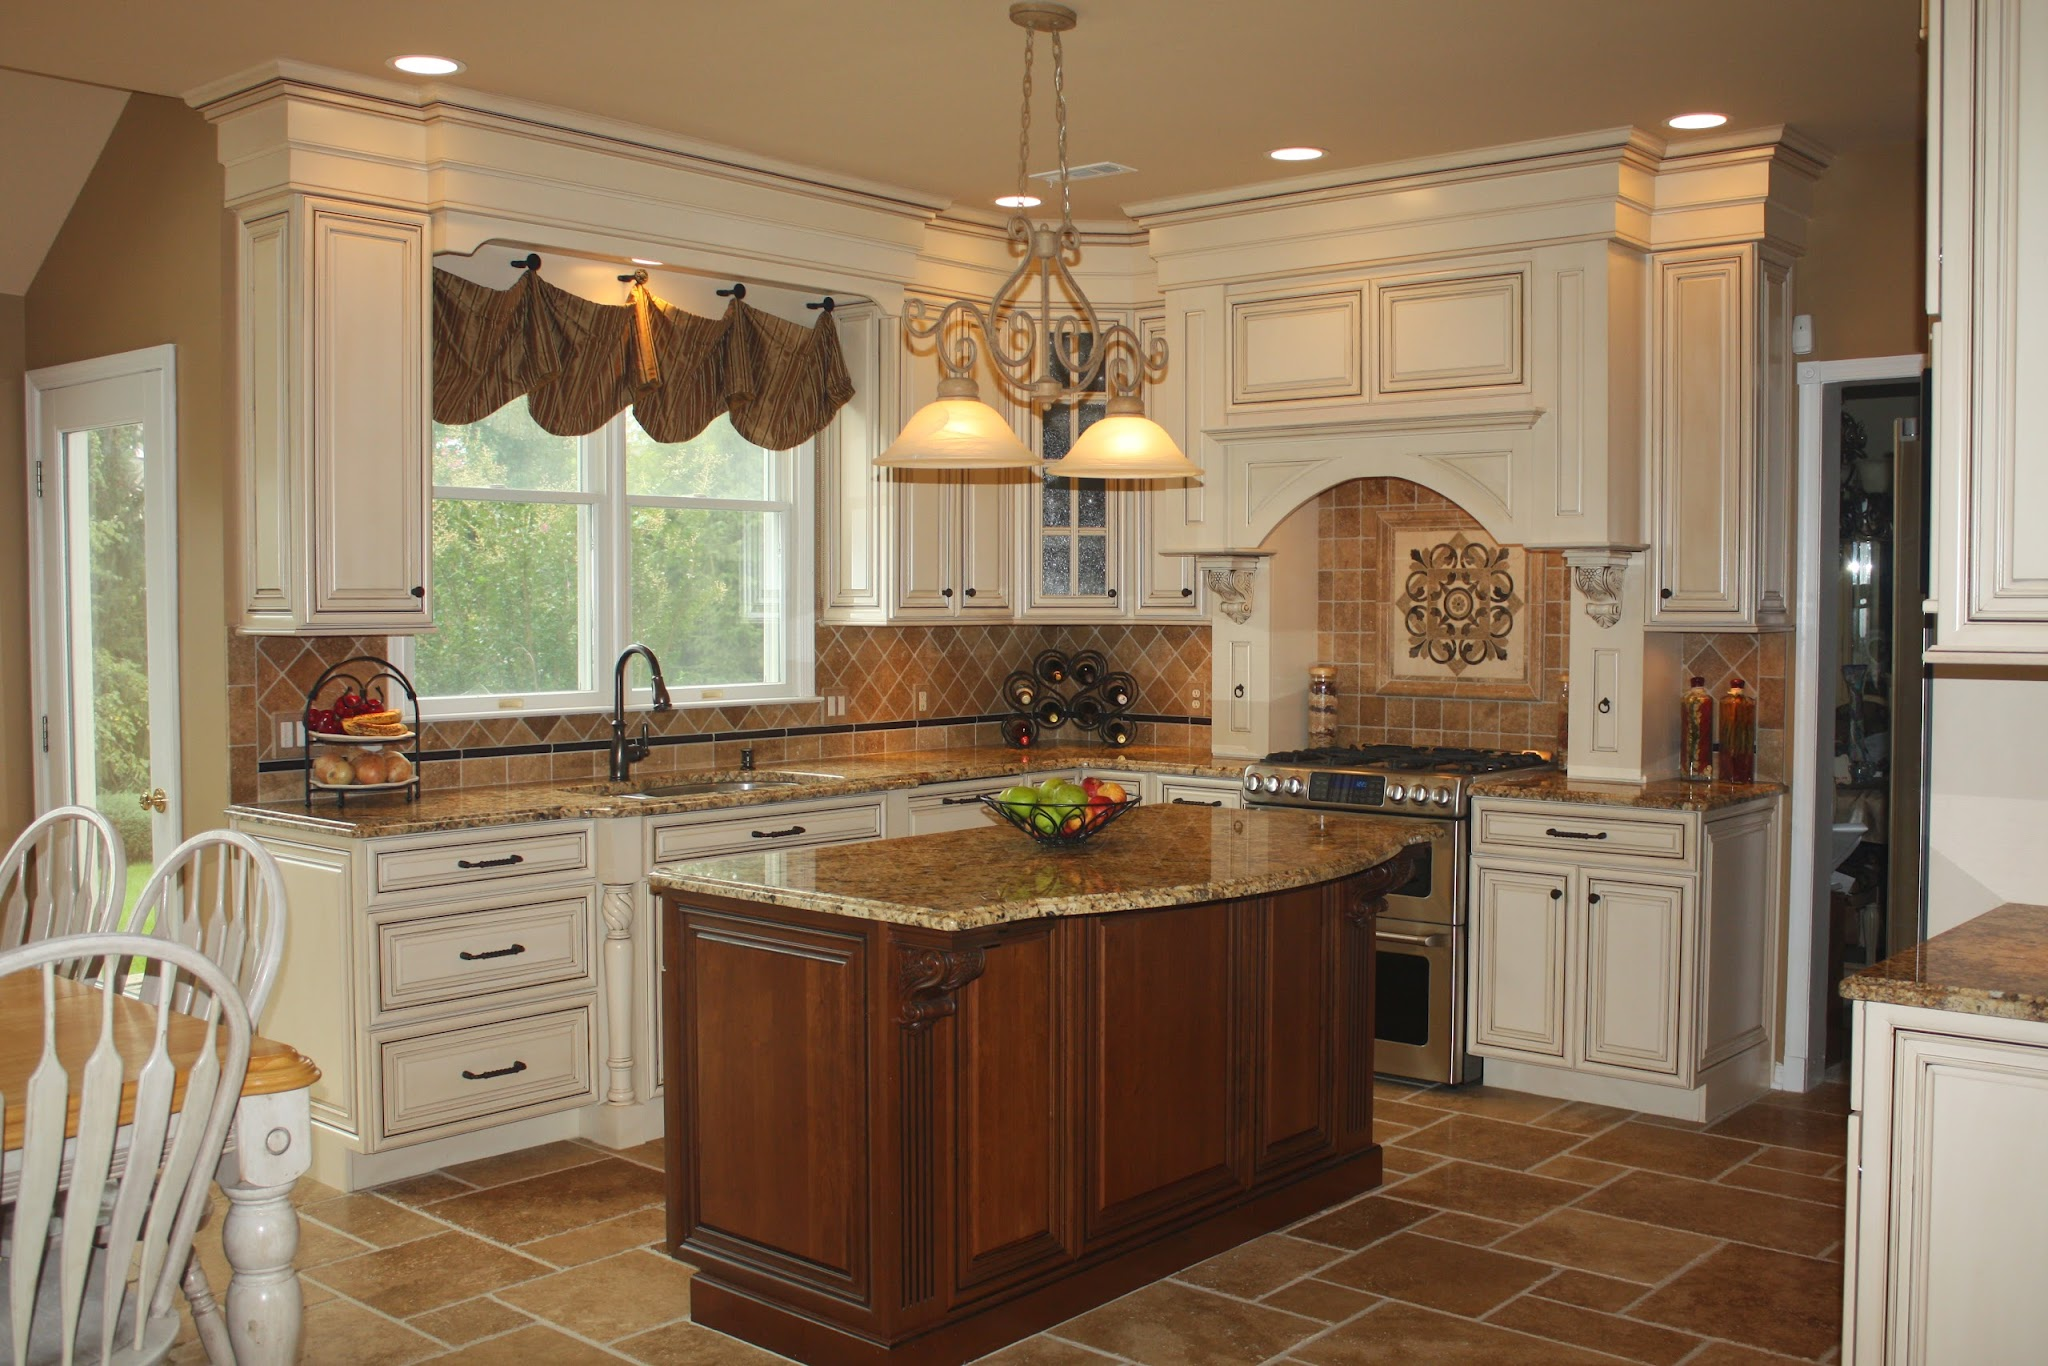 Houzz kitchen dreams house furniture for Remodeling kitchen ideas